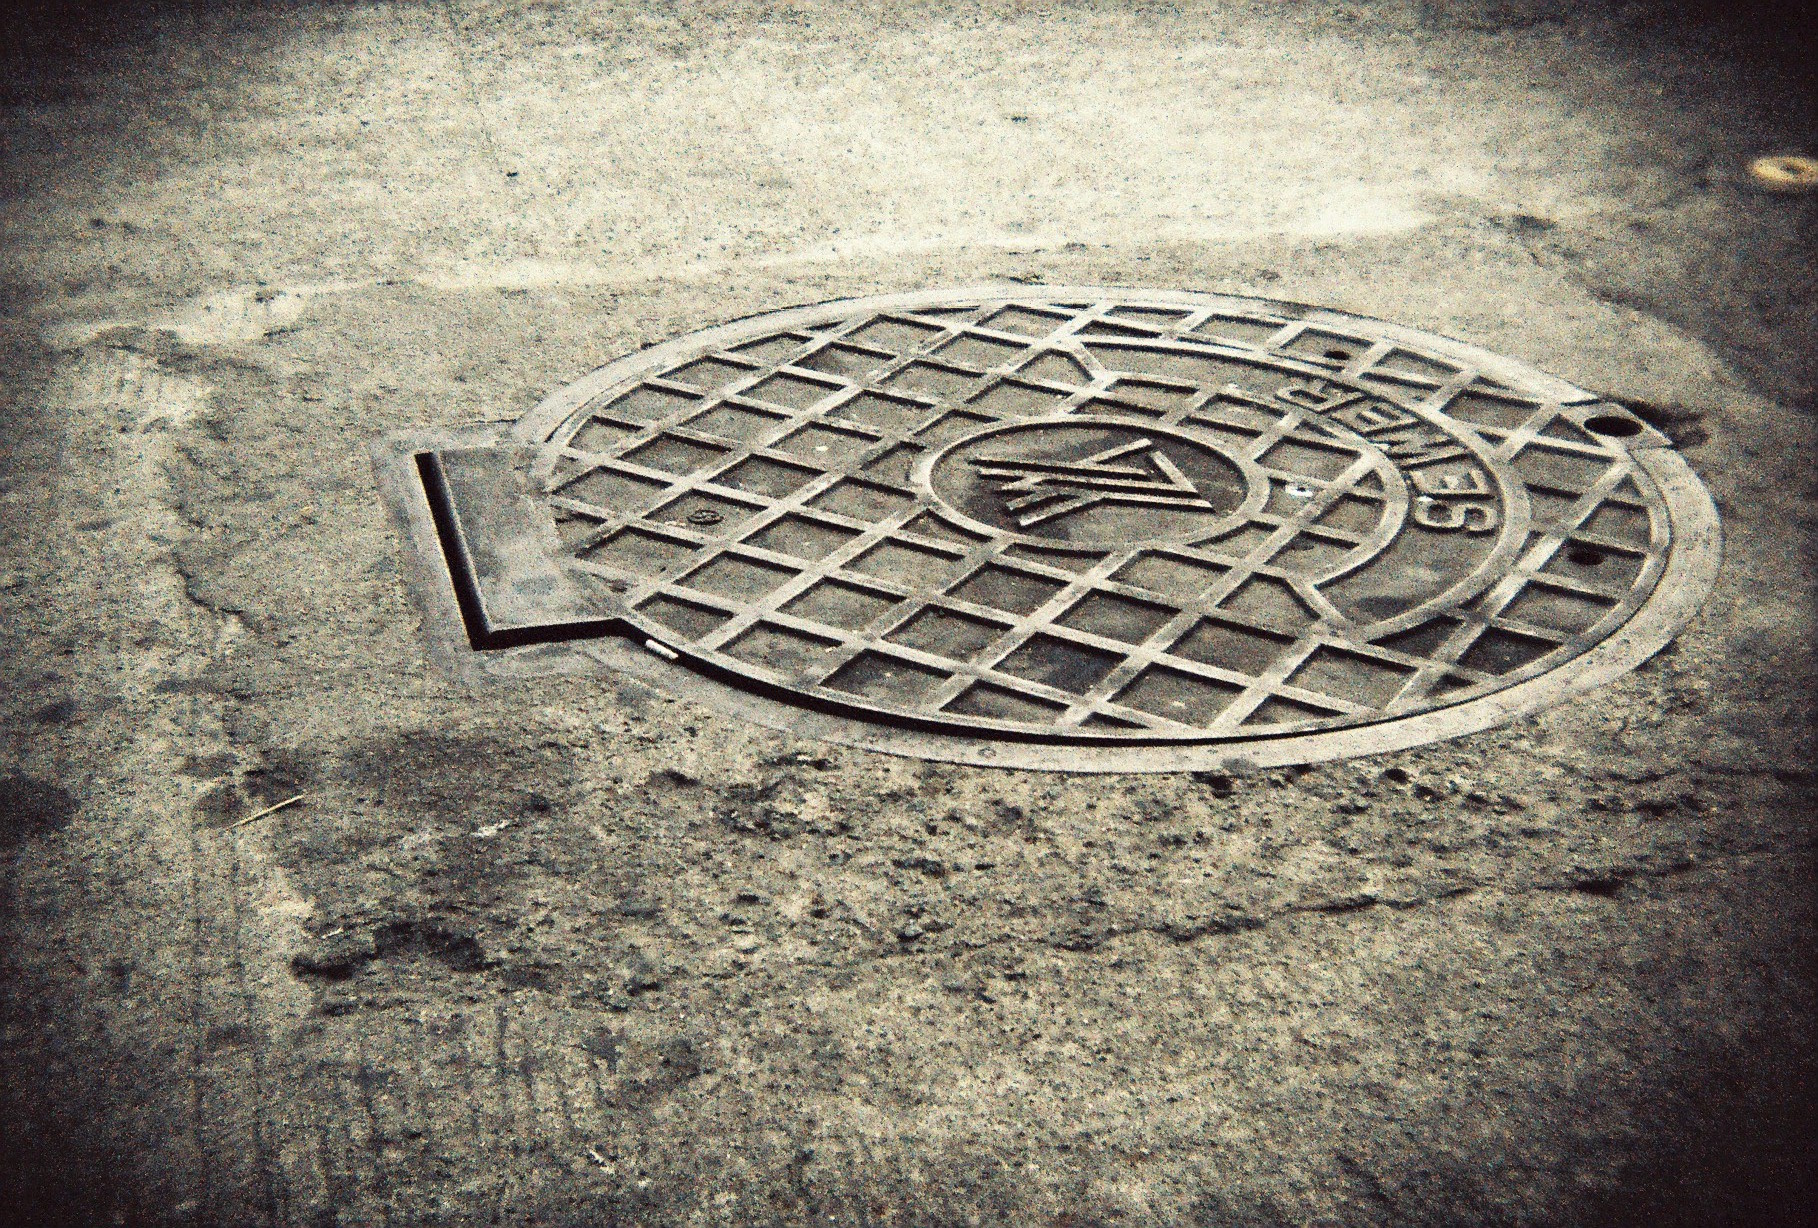 Or this manhole cover. (Dear Vikki of 2009, why the heck would you want a picture of this?!)